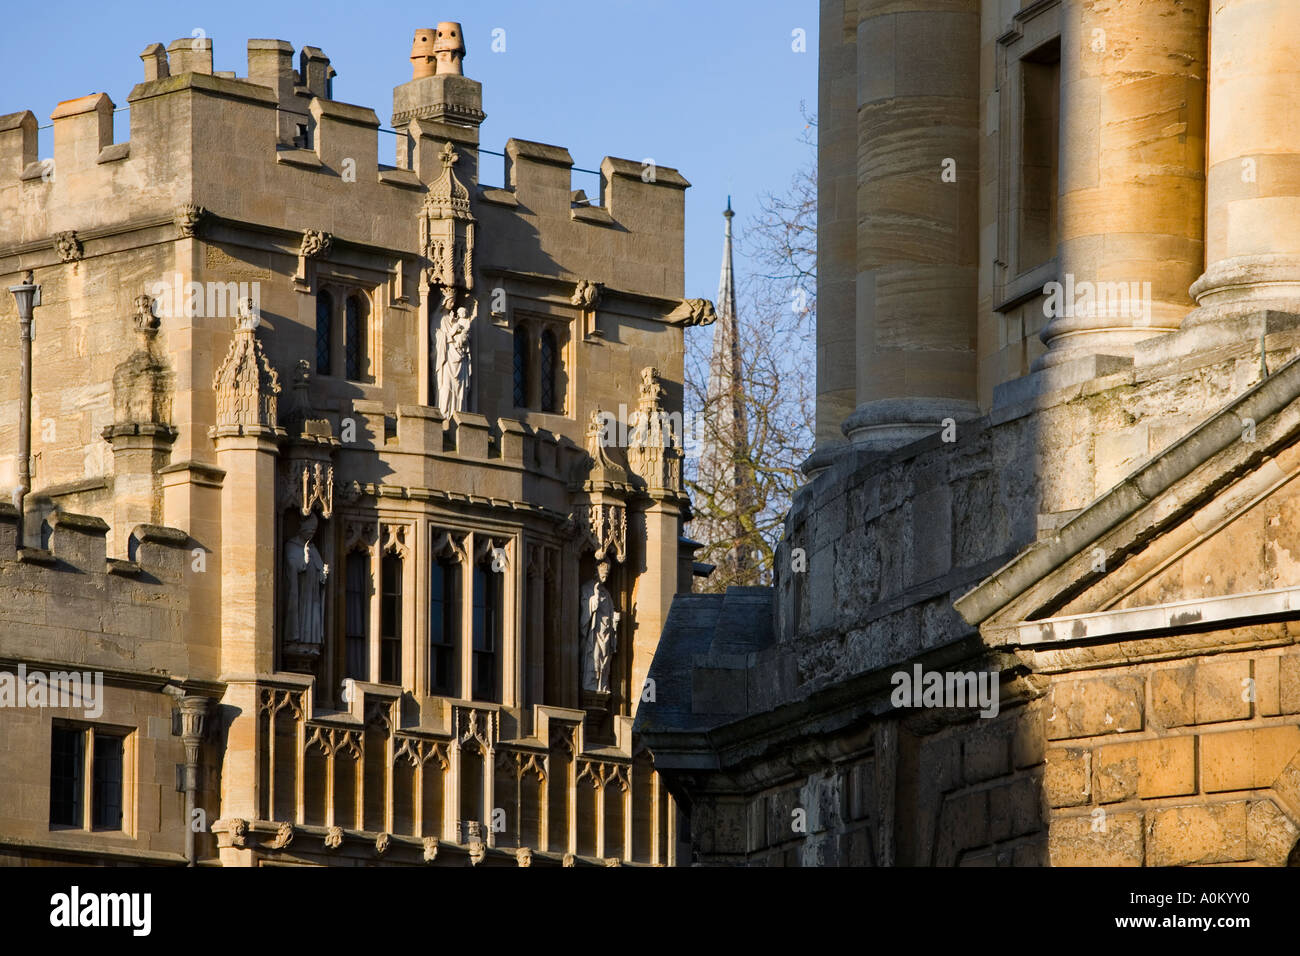 Facade of Brasenose College Oxford, Radcliffe Square - Stock Image